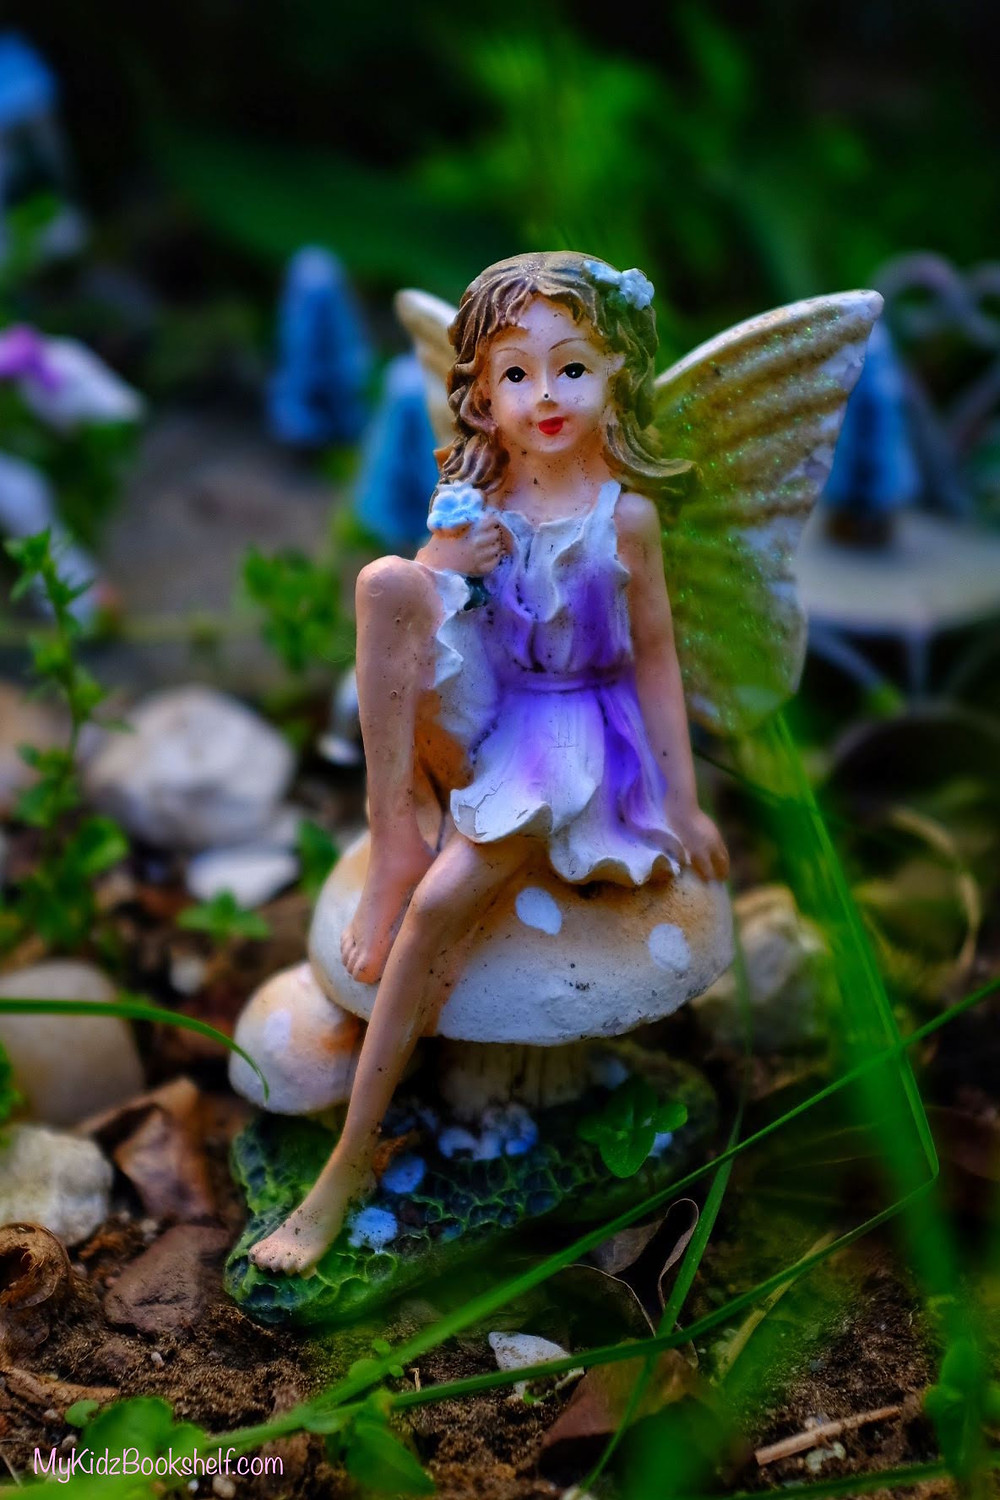 Fairy garden statue fairy with wings sitting on a mushroom